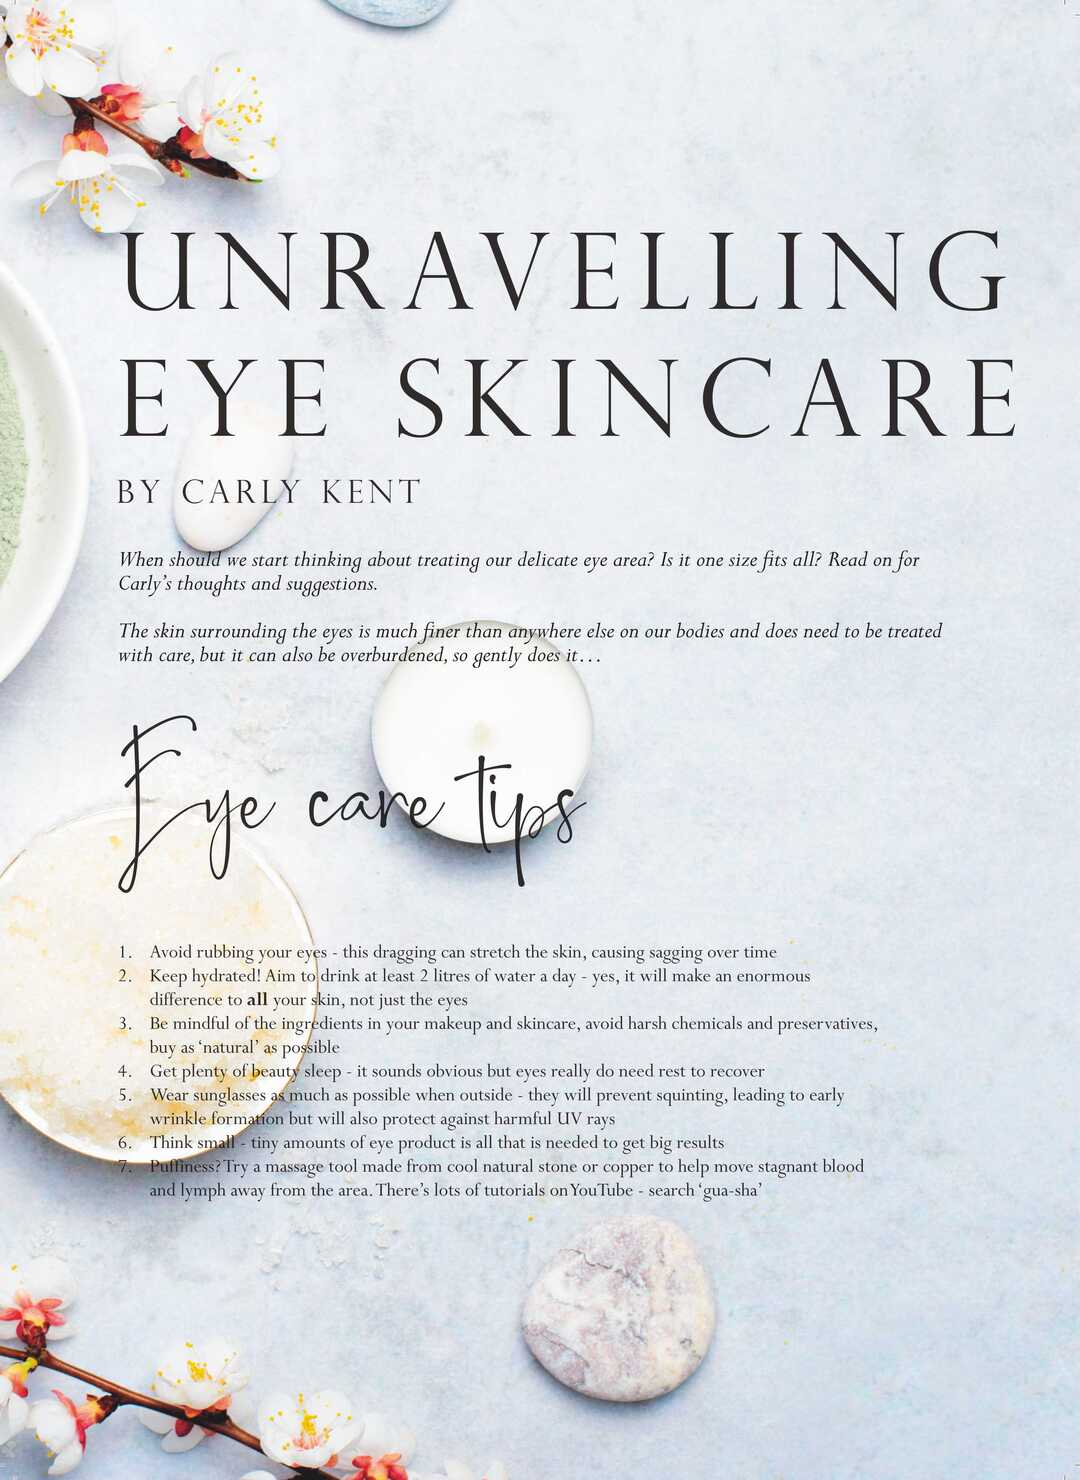 Page 48 of Unravelling Eye Skincare by Carly Kent